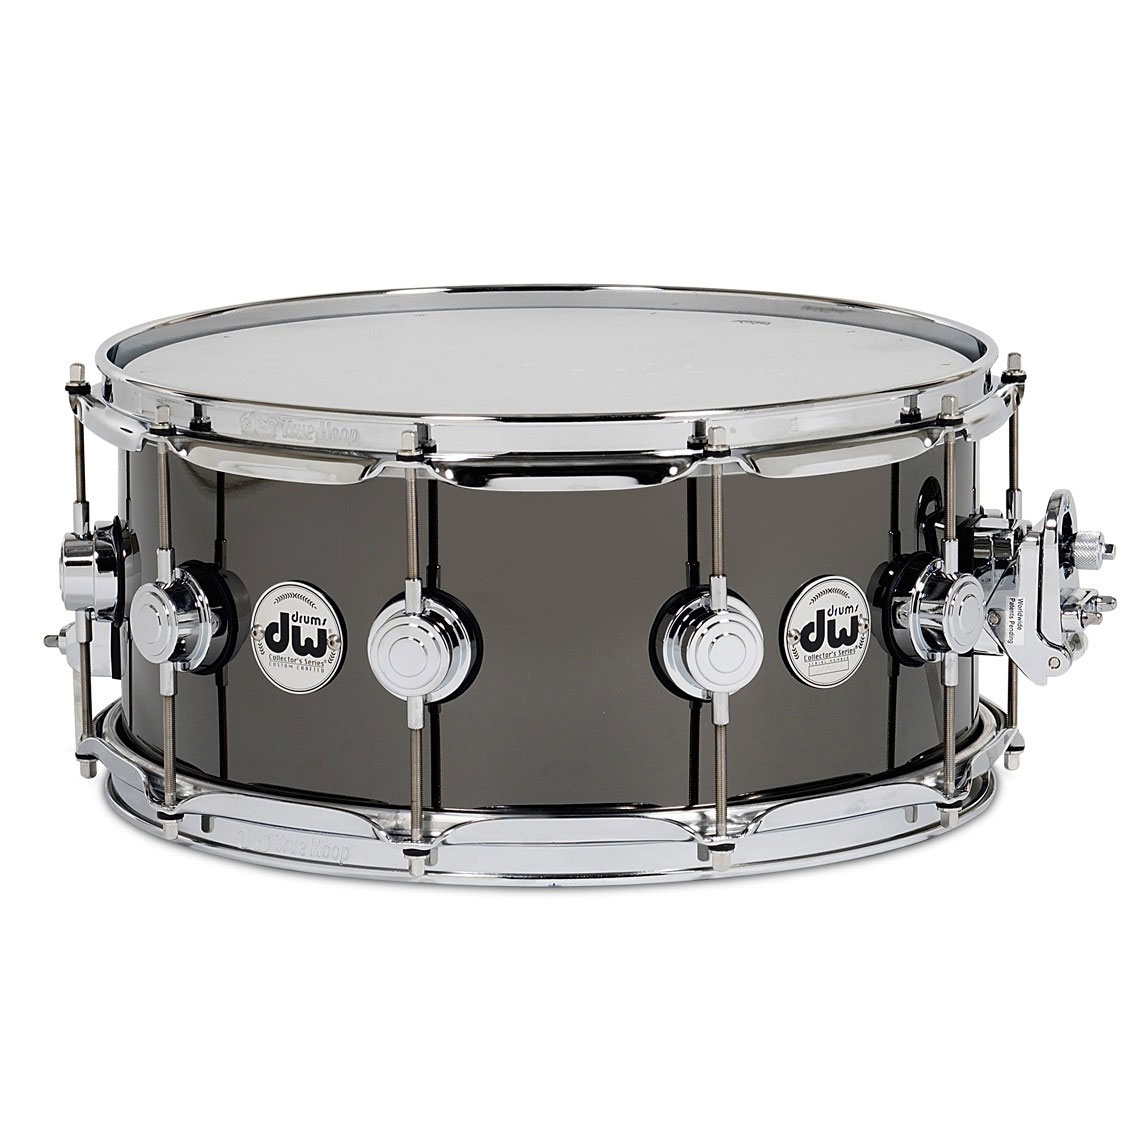 "DW 5.5"" x 14"" Black Nickel over Thin Brass Snare Drum"